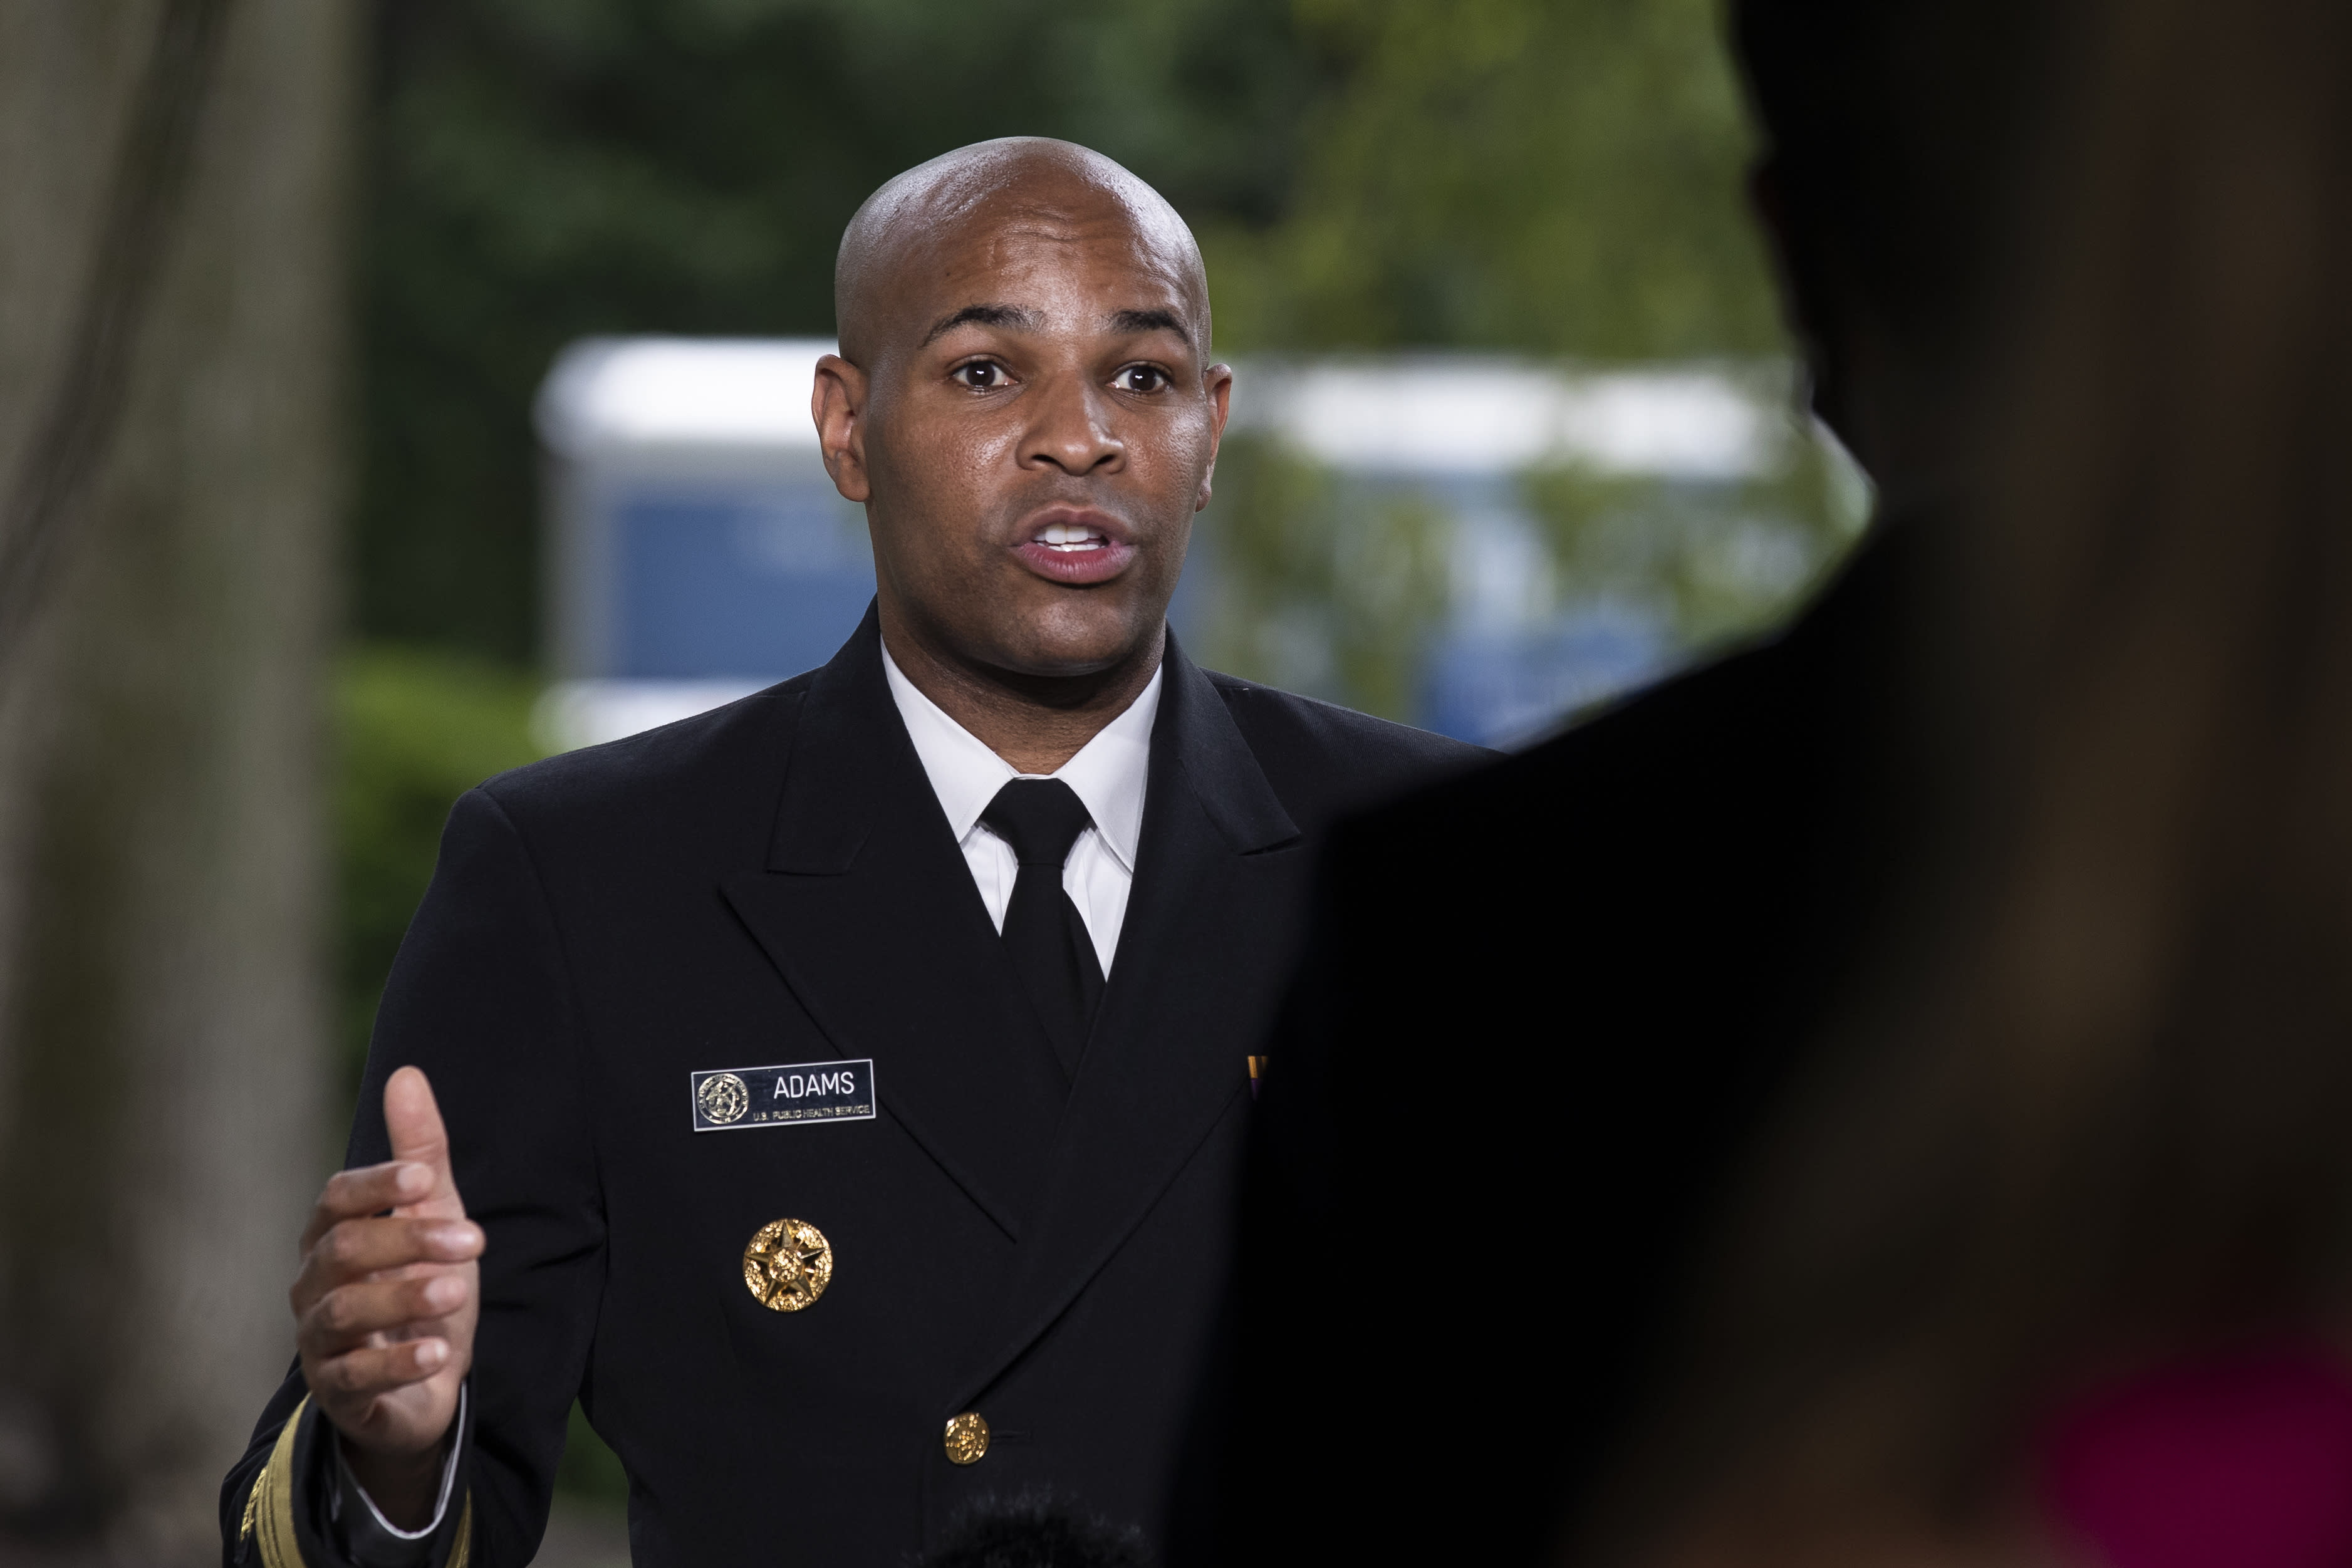 U.S. Surgeon General Jerome Adams does a television interview on the North Lawn of the White House, Tuesday, July 7, 2020, in Washington. (AP Photo/Alex Brandon)